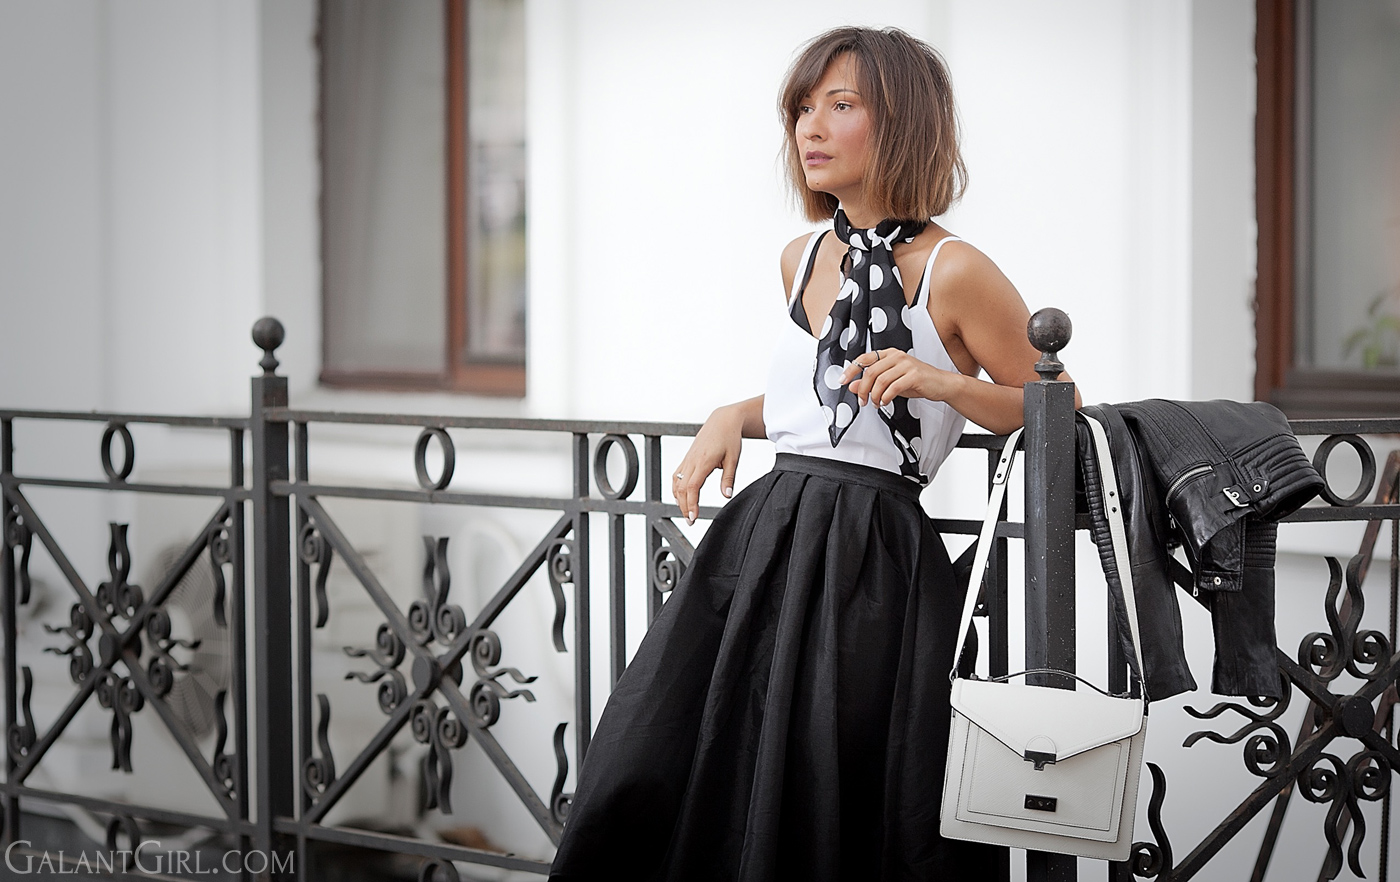 polka-dot-scarf-and-flare-skirt-choies-street-style-inspiration-outfit